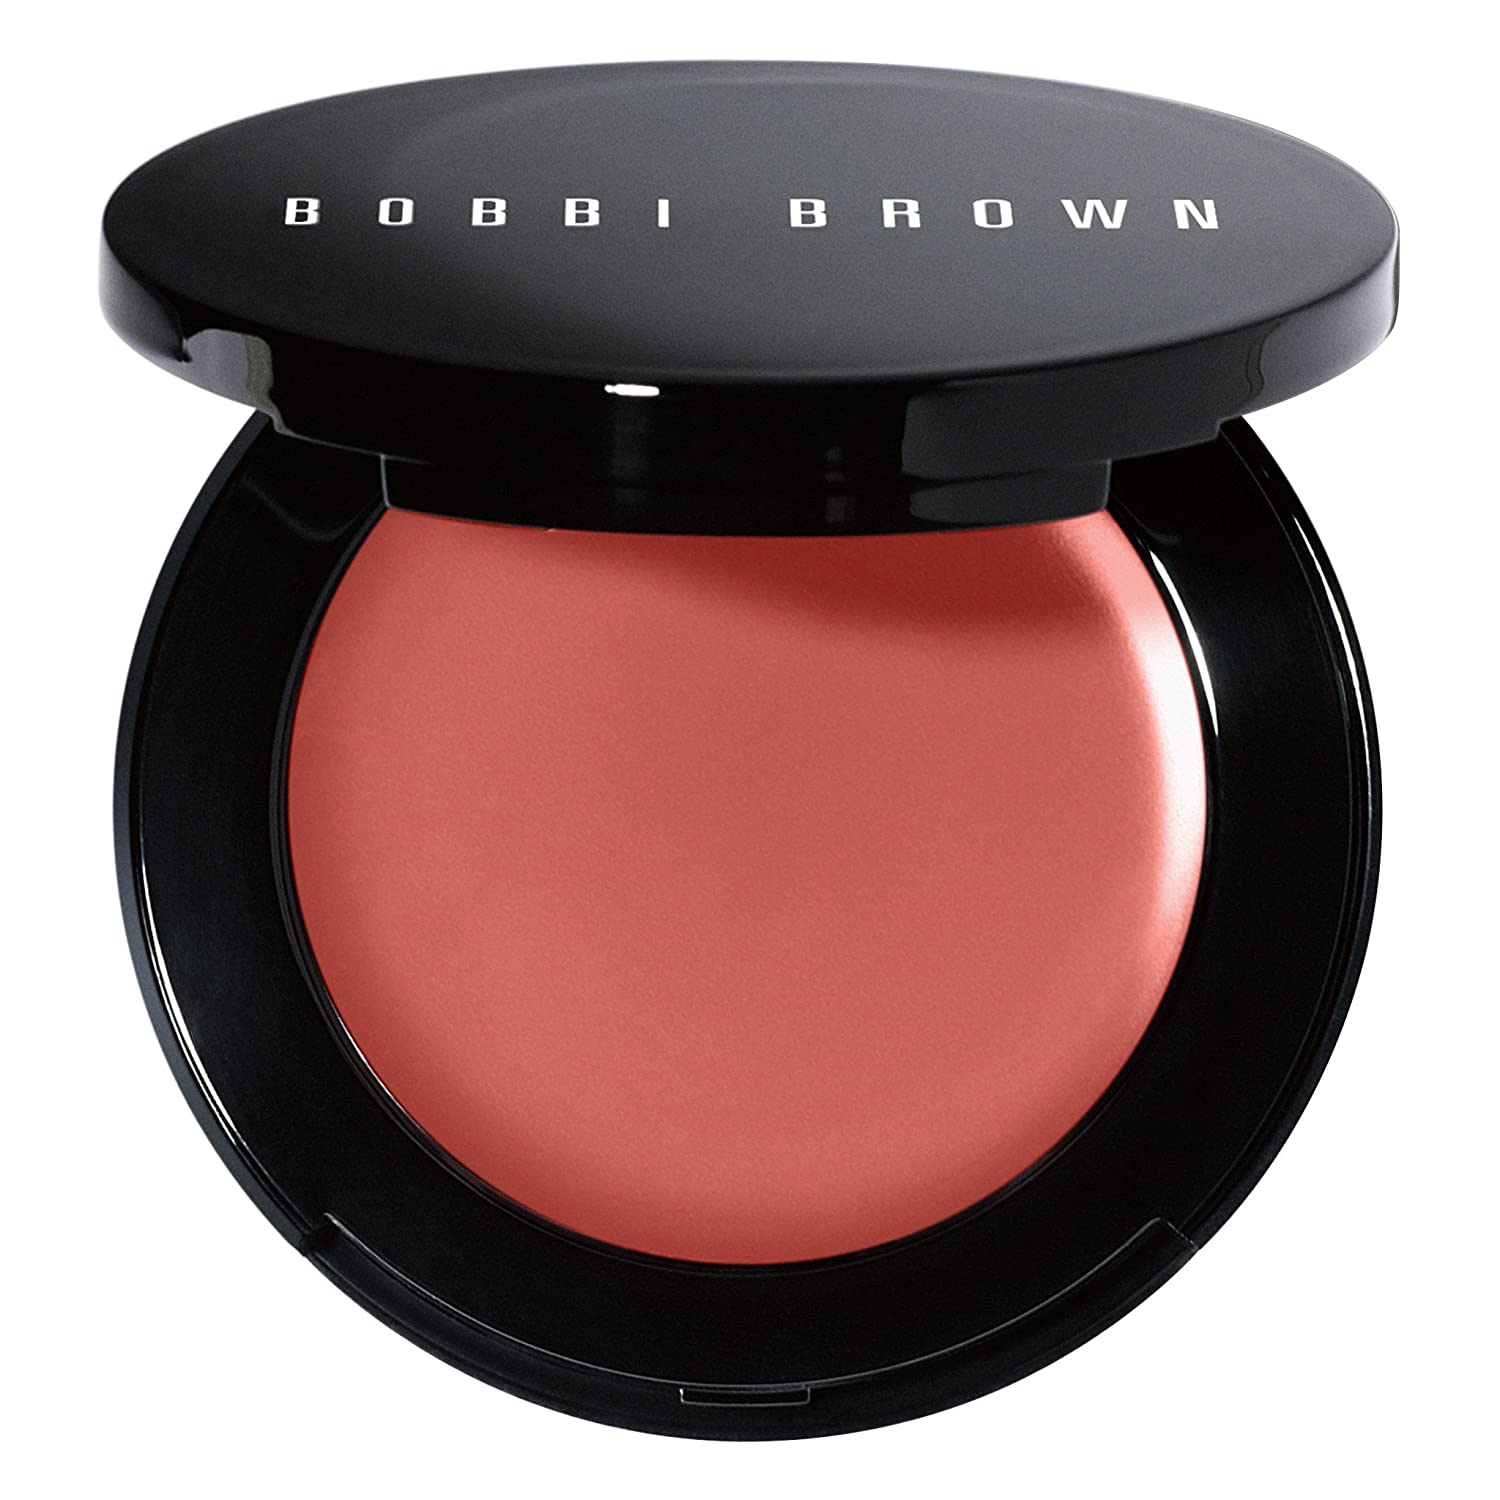 ボビイブラウン Pot Rouge For Lips & Cheeks (New Packaging) - #06 Powder Pink 3.7g/0.13oz B007GOQYR6